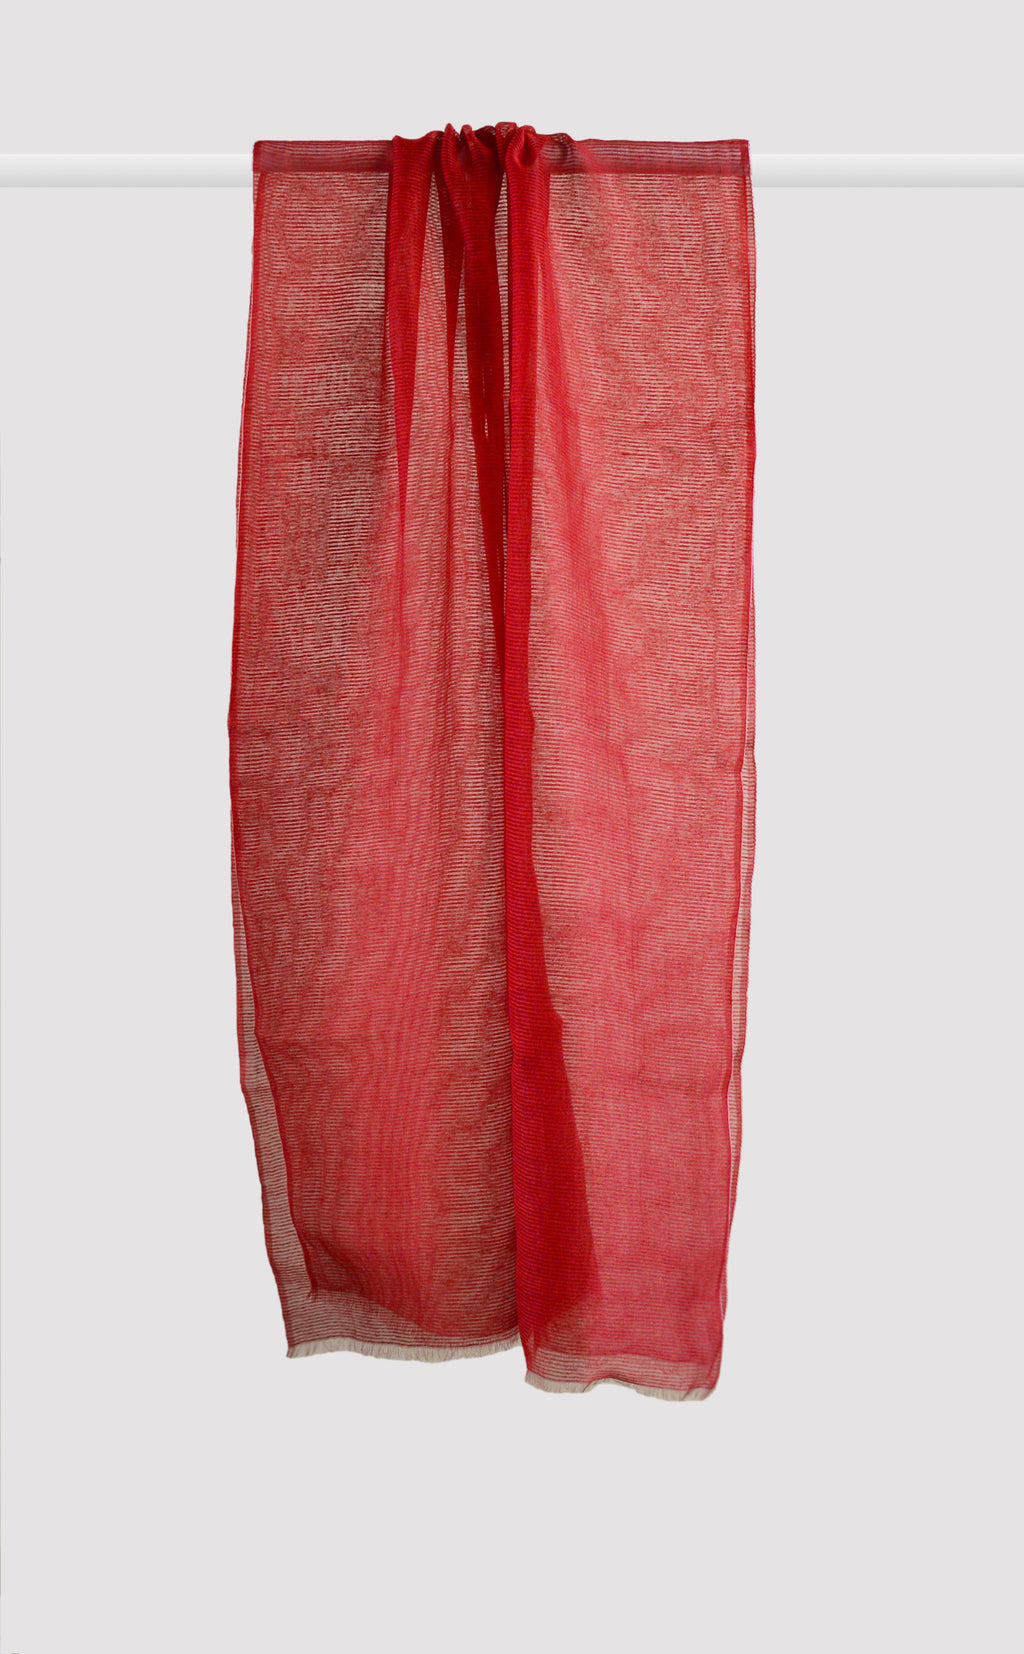 Deep Red Organza Dupatta